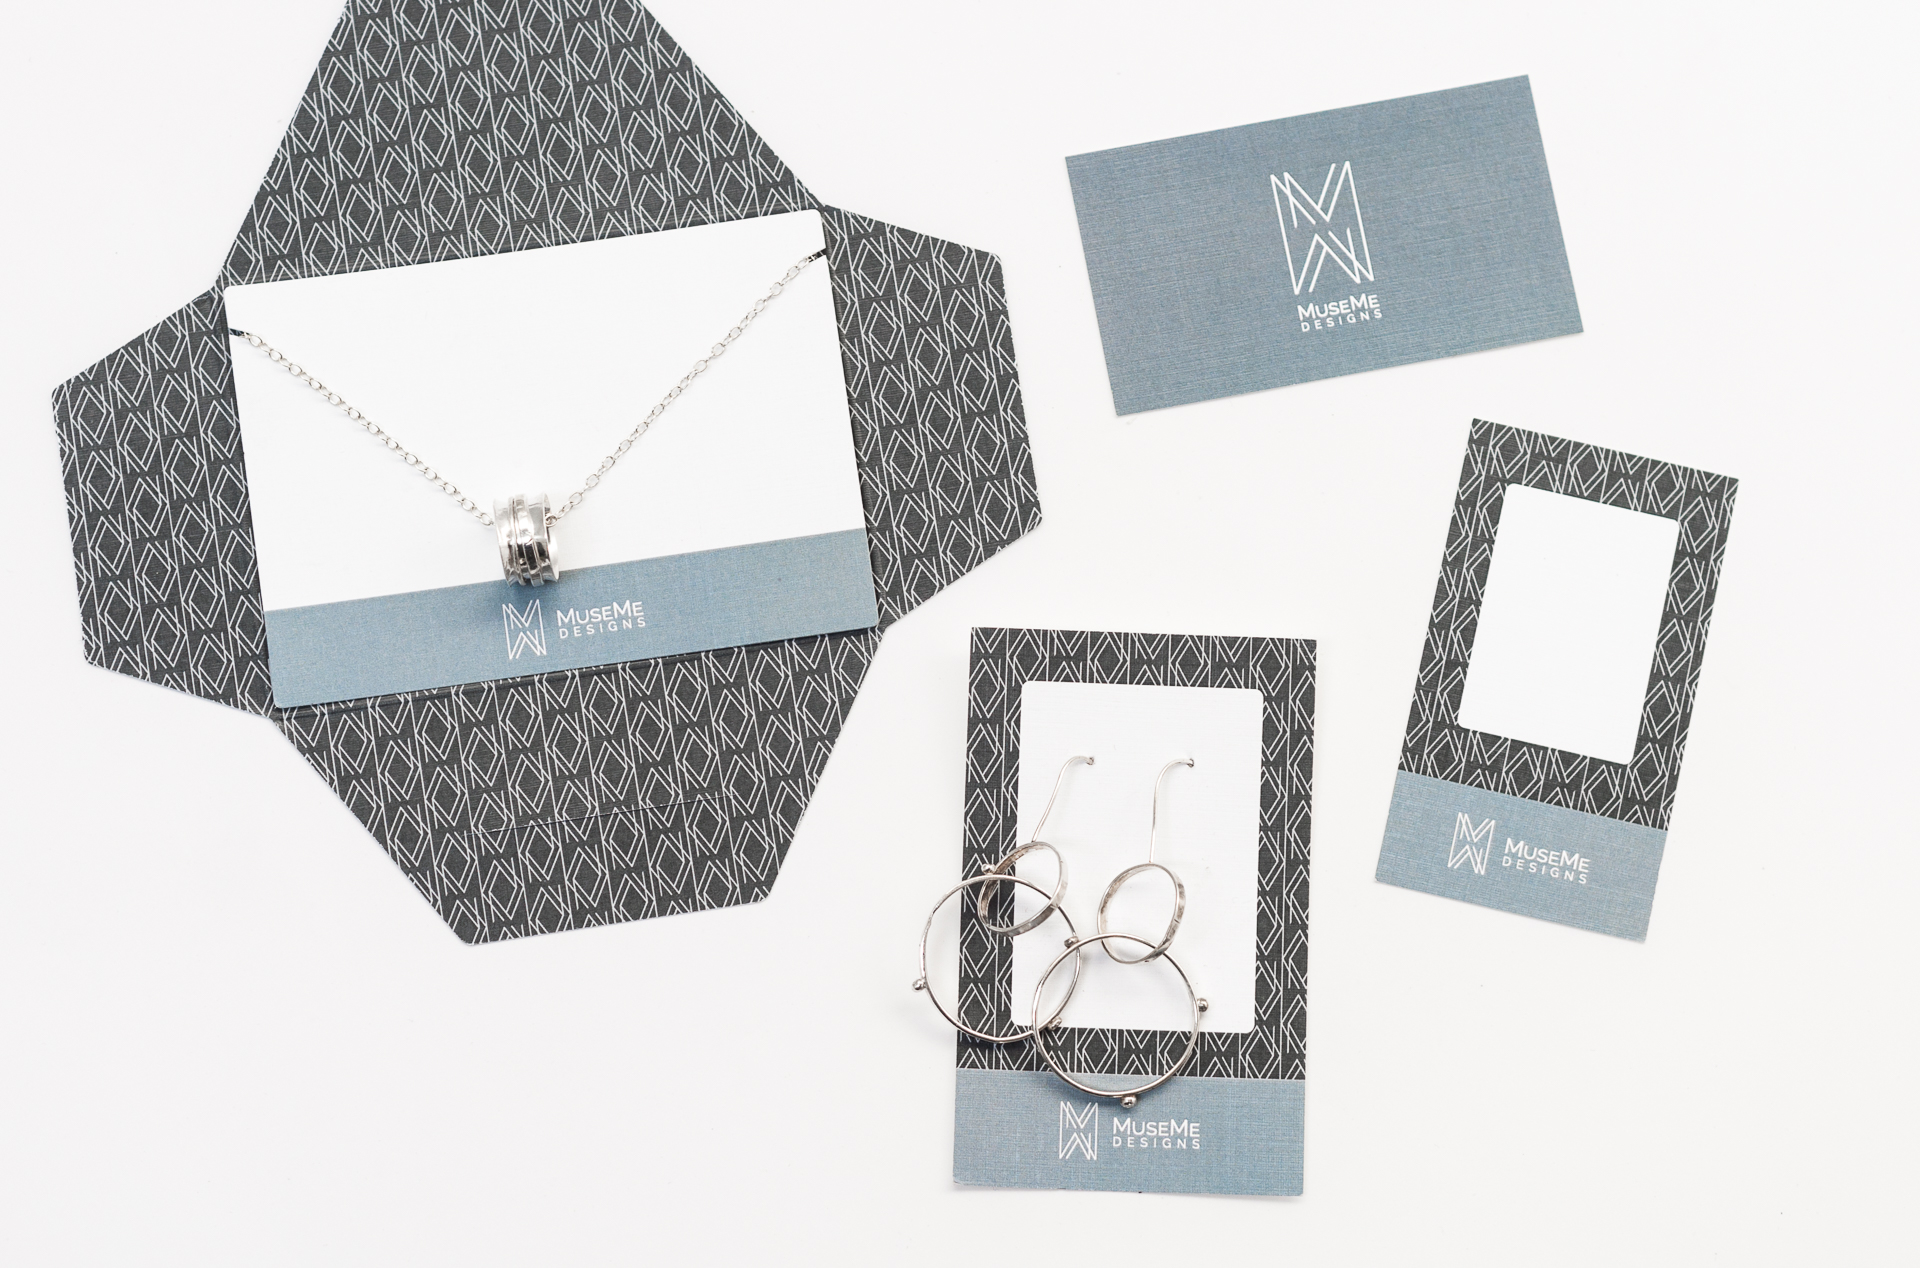 Some elements of MuseMe's new packaging, including the necklace envelope and card, had to be cut using a custom die cut, which we also facilitated and coordinated on behalf of the client.